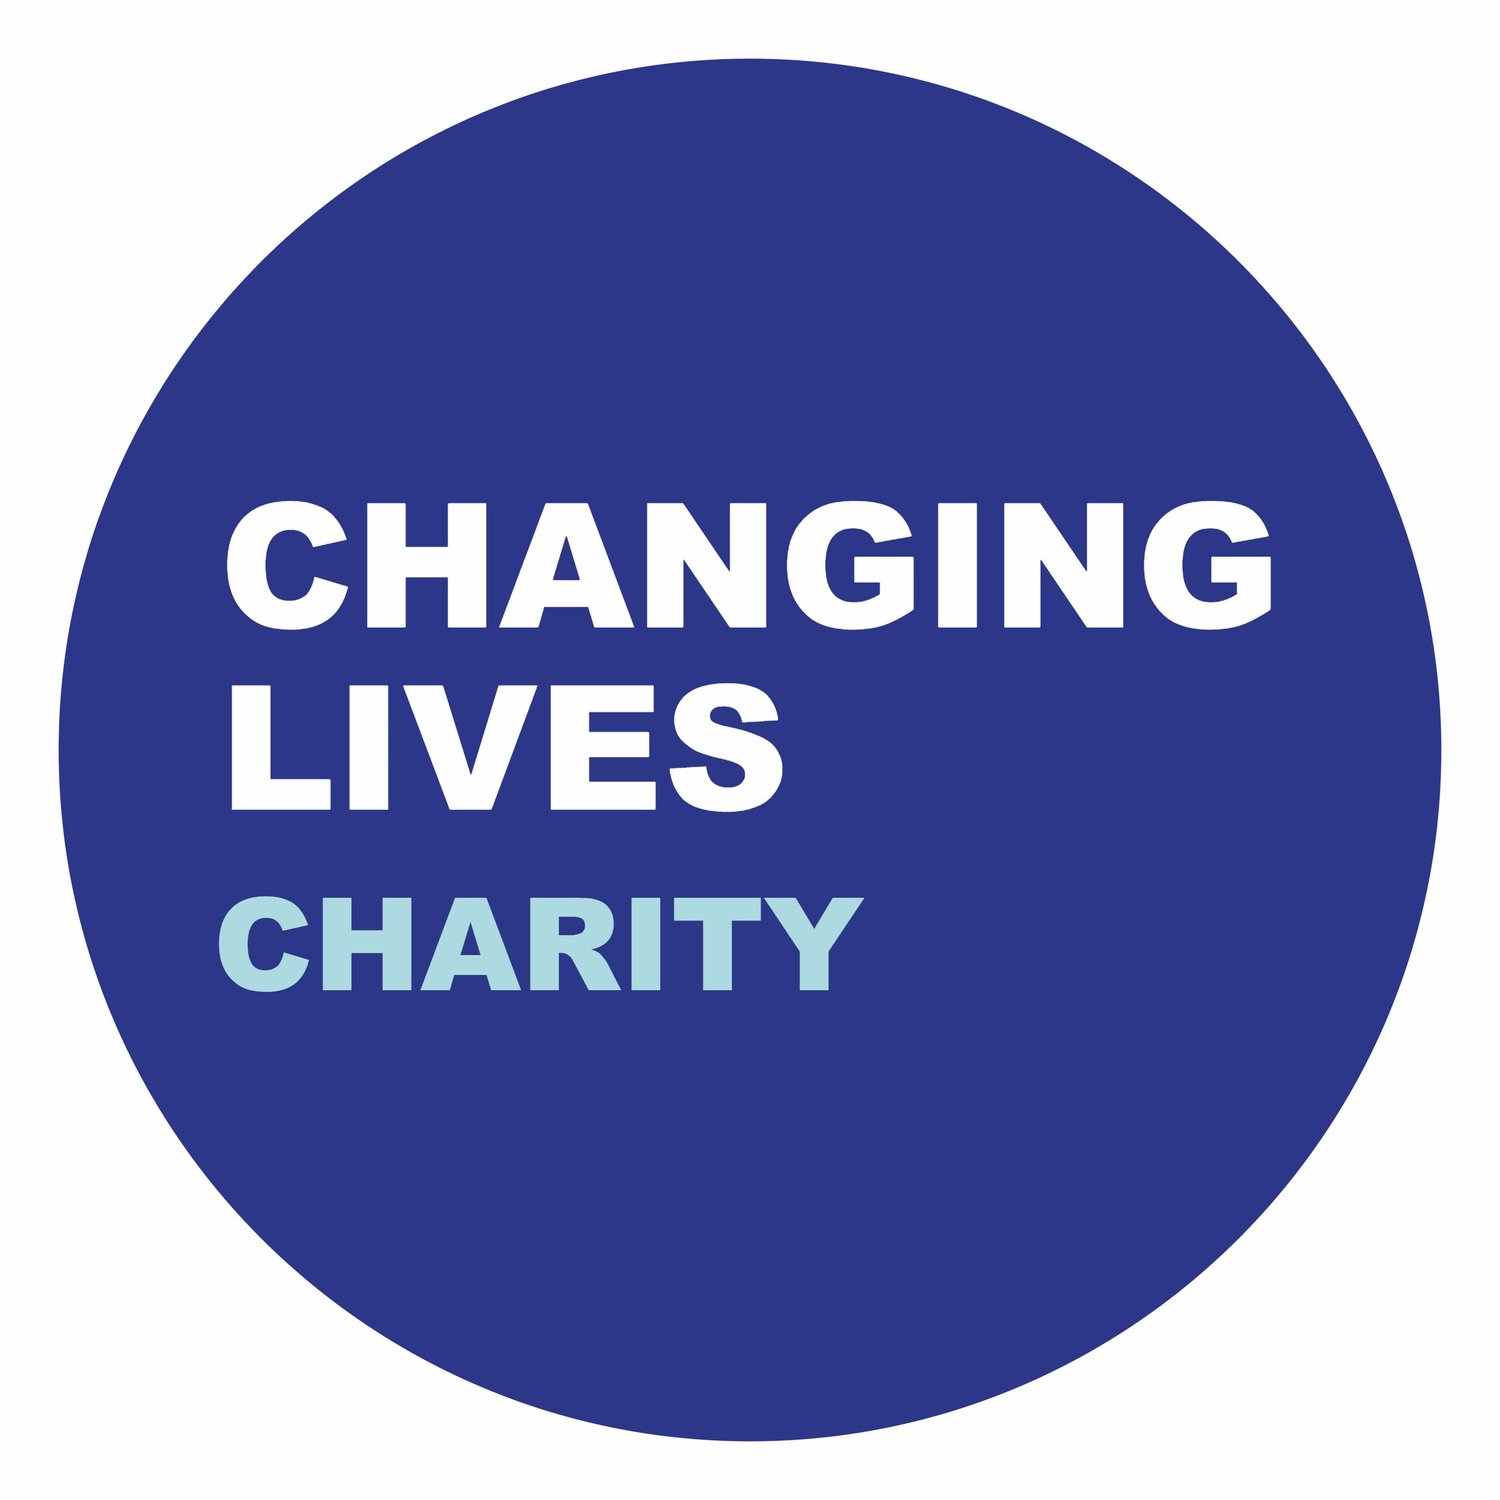 Changing Lives Charity